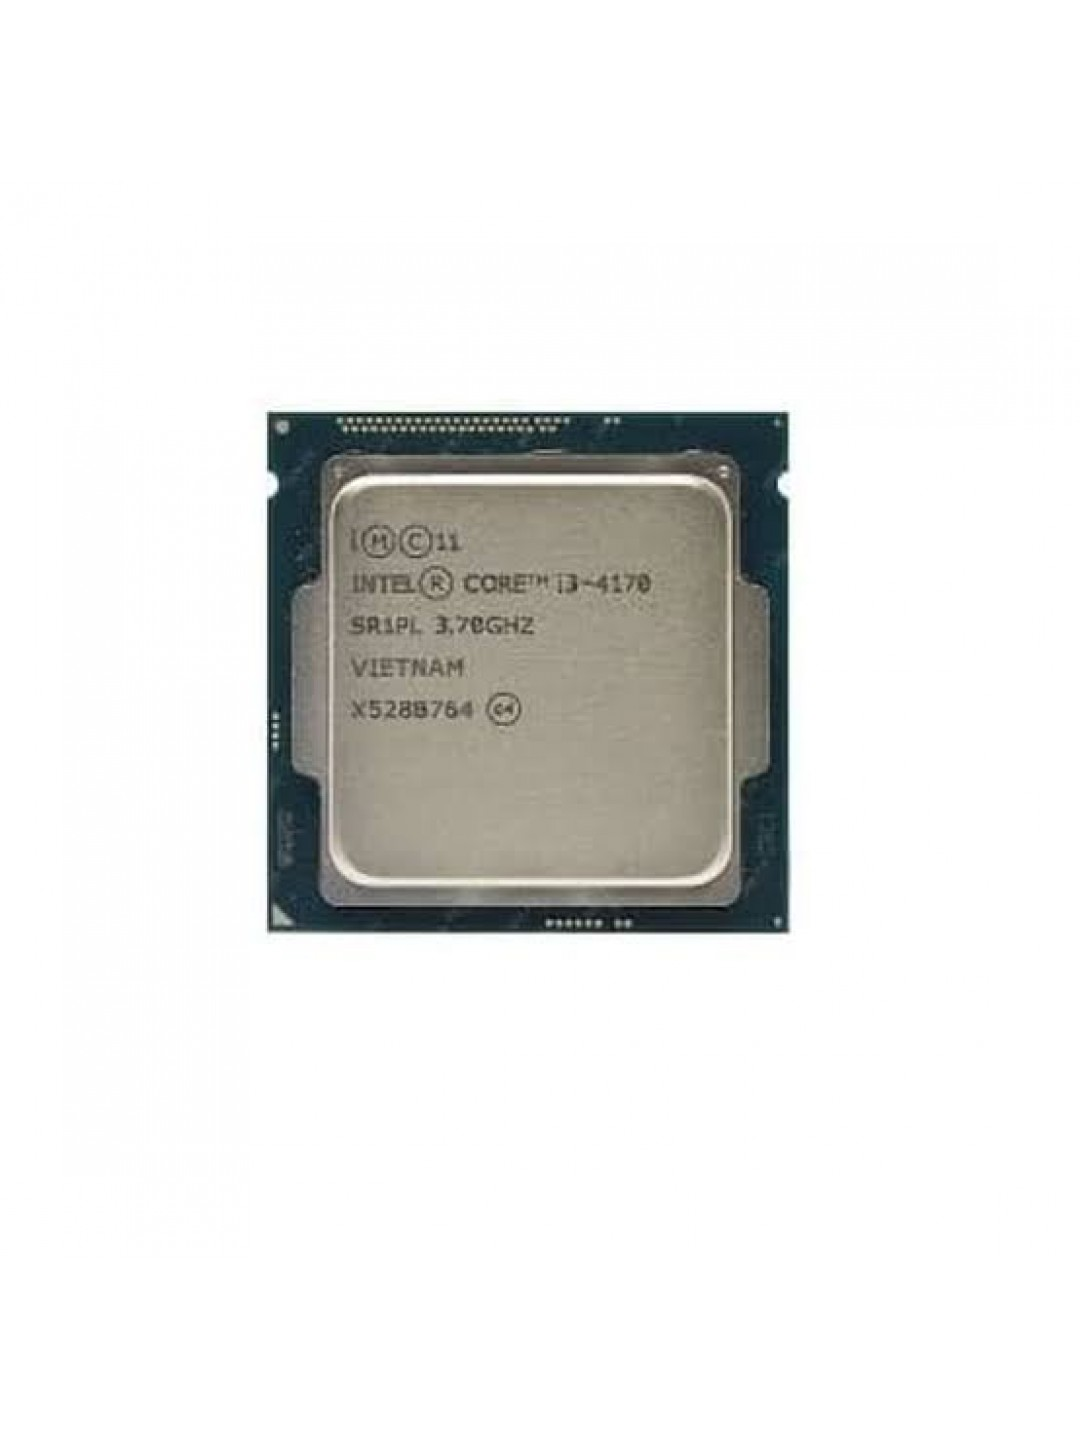 Prosesor Intel Core i3-4170 Tray